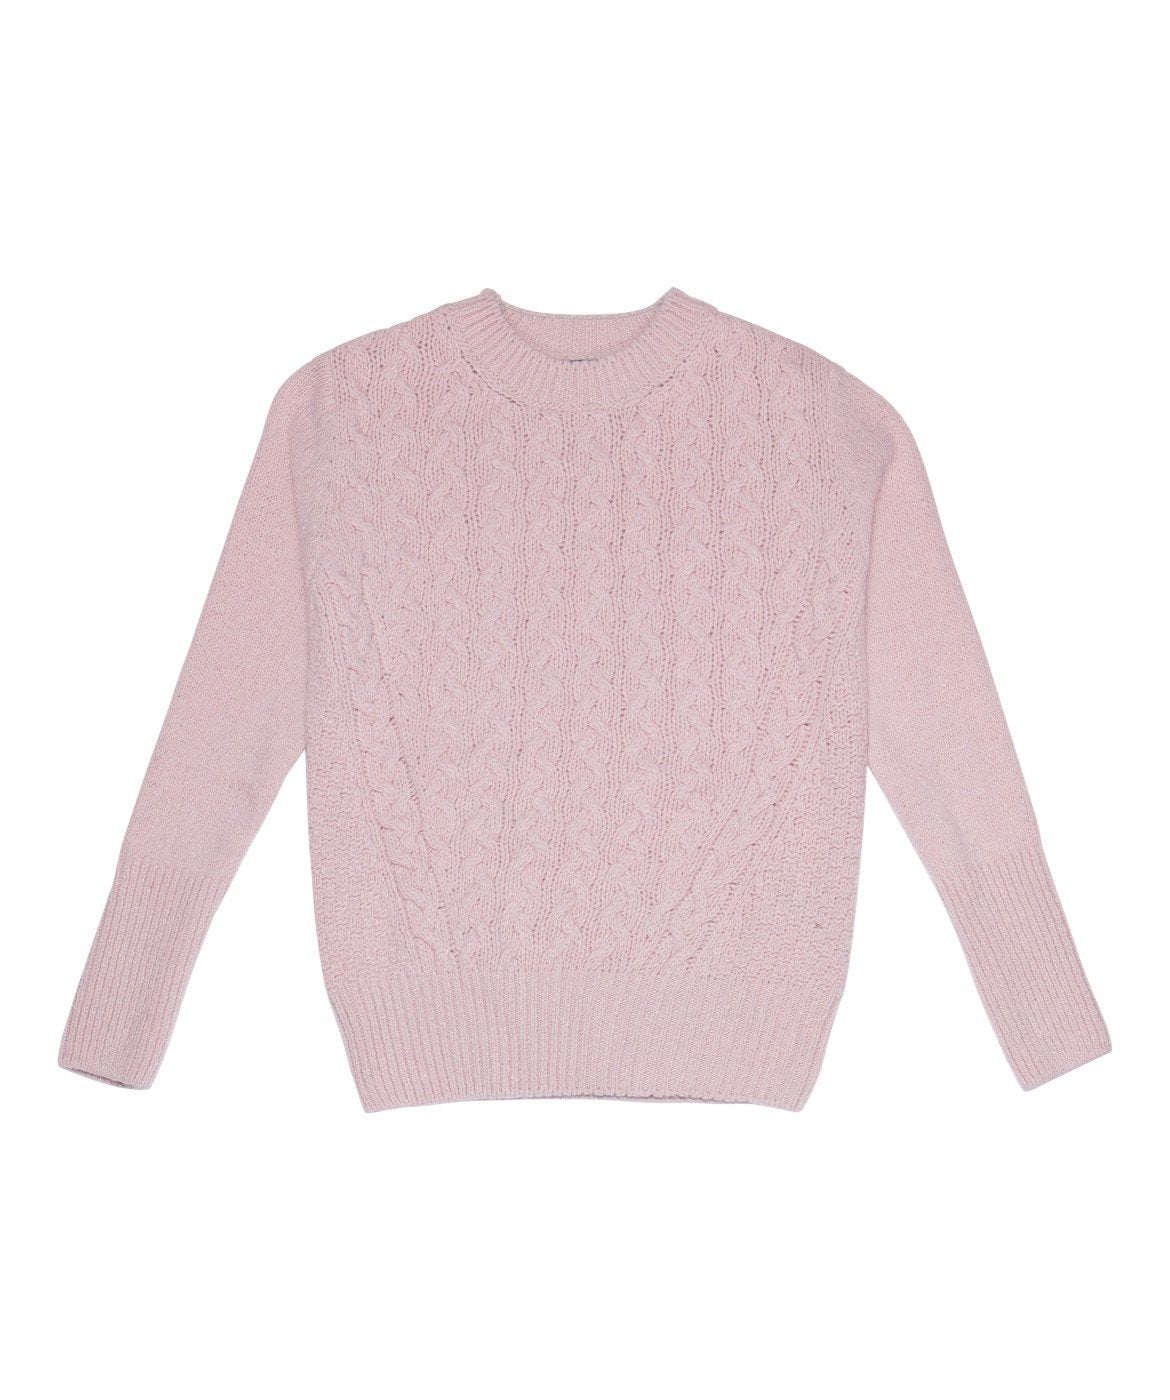 Women's Kilcrea Cable Round Neck Sweater Pink-Mist